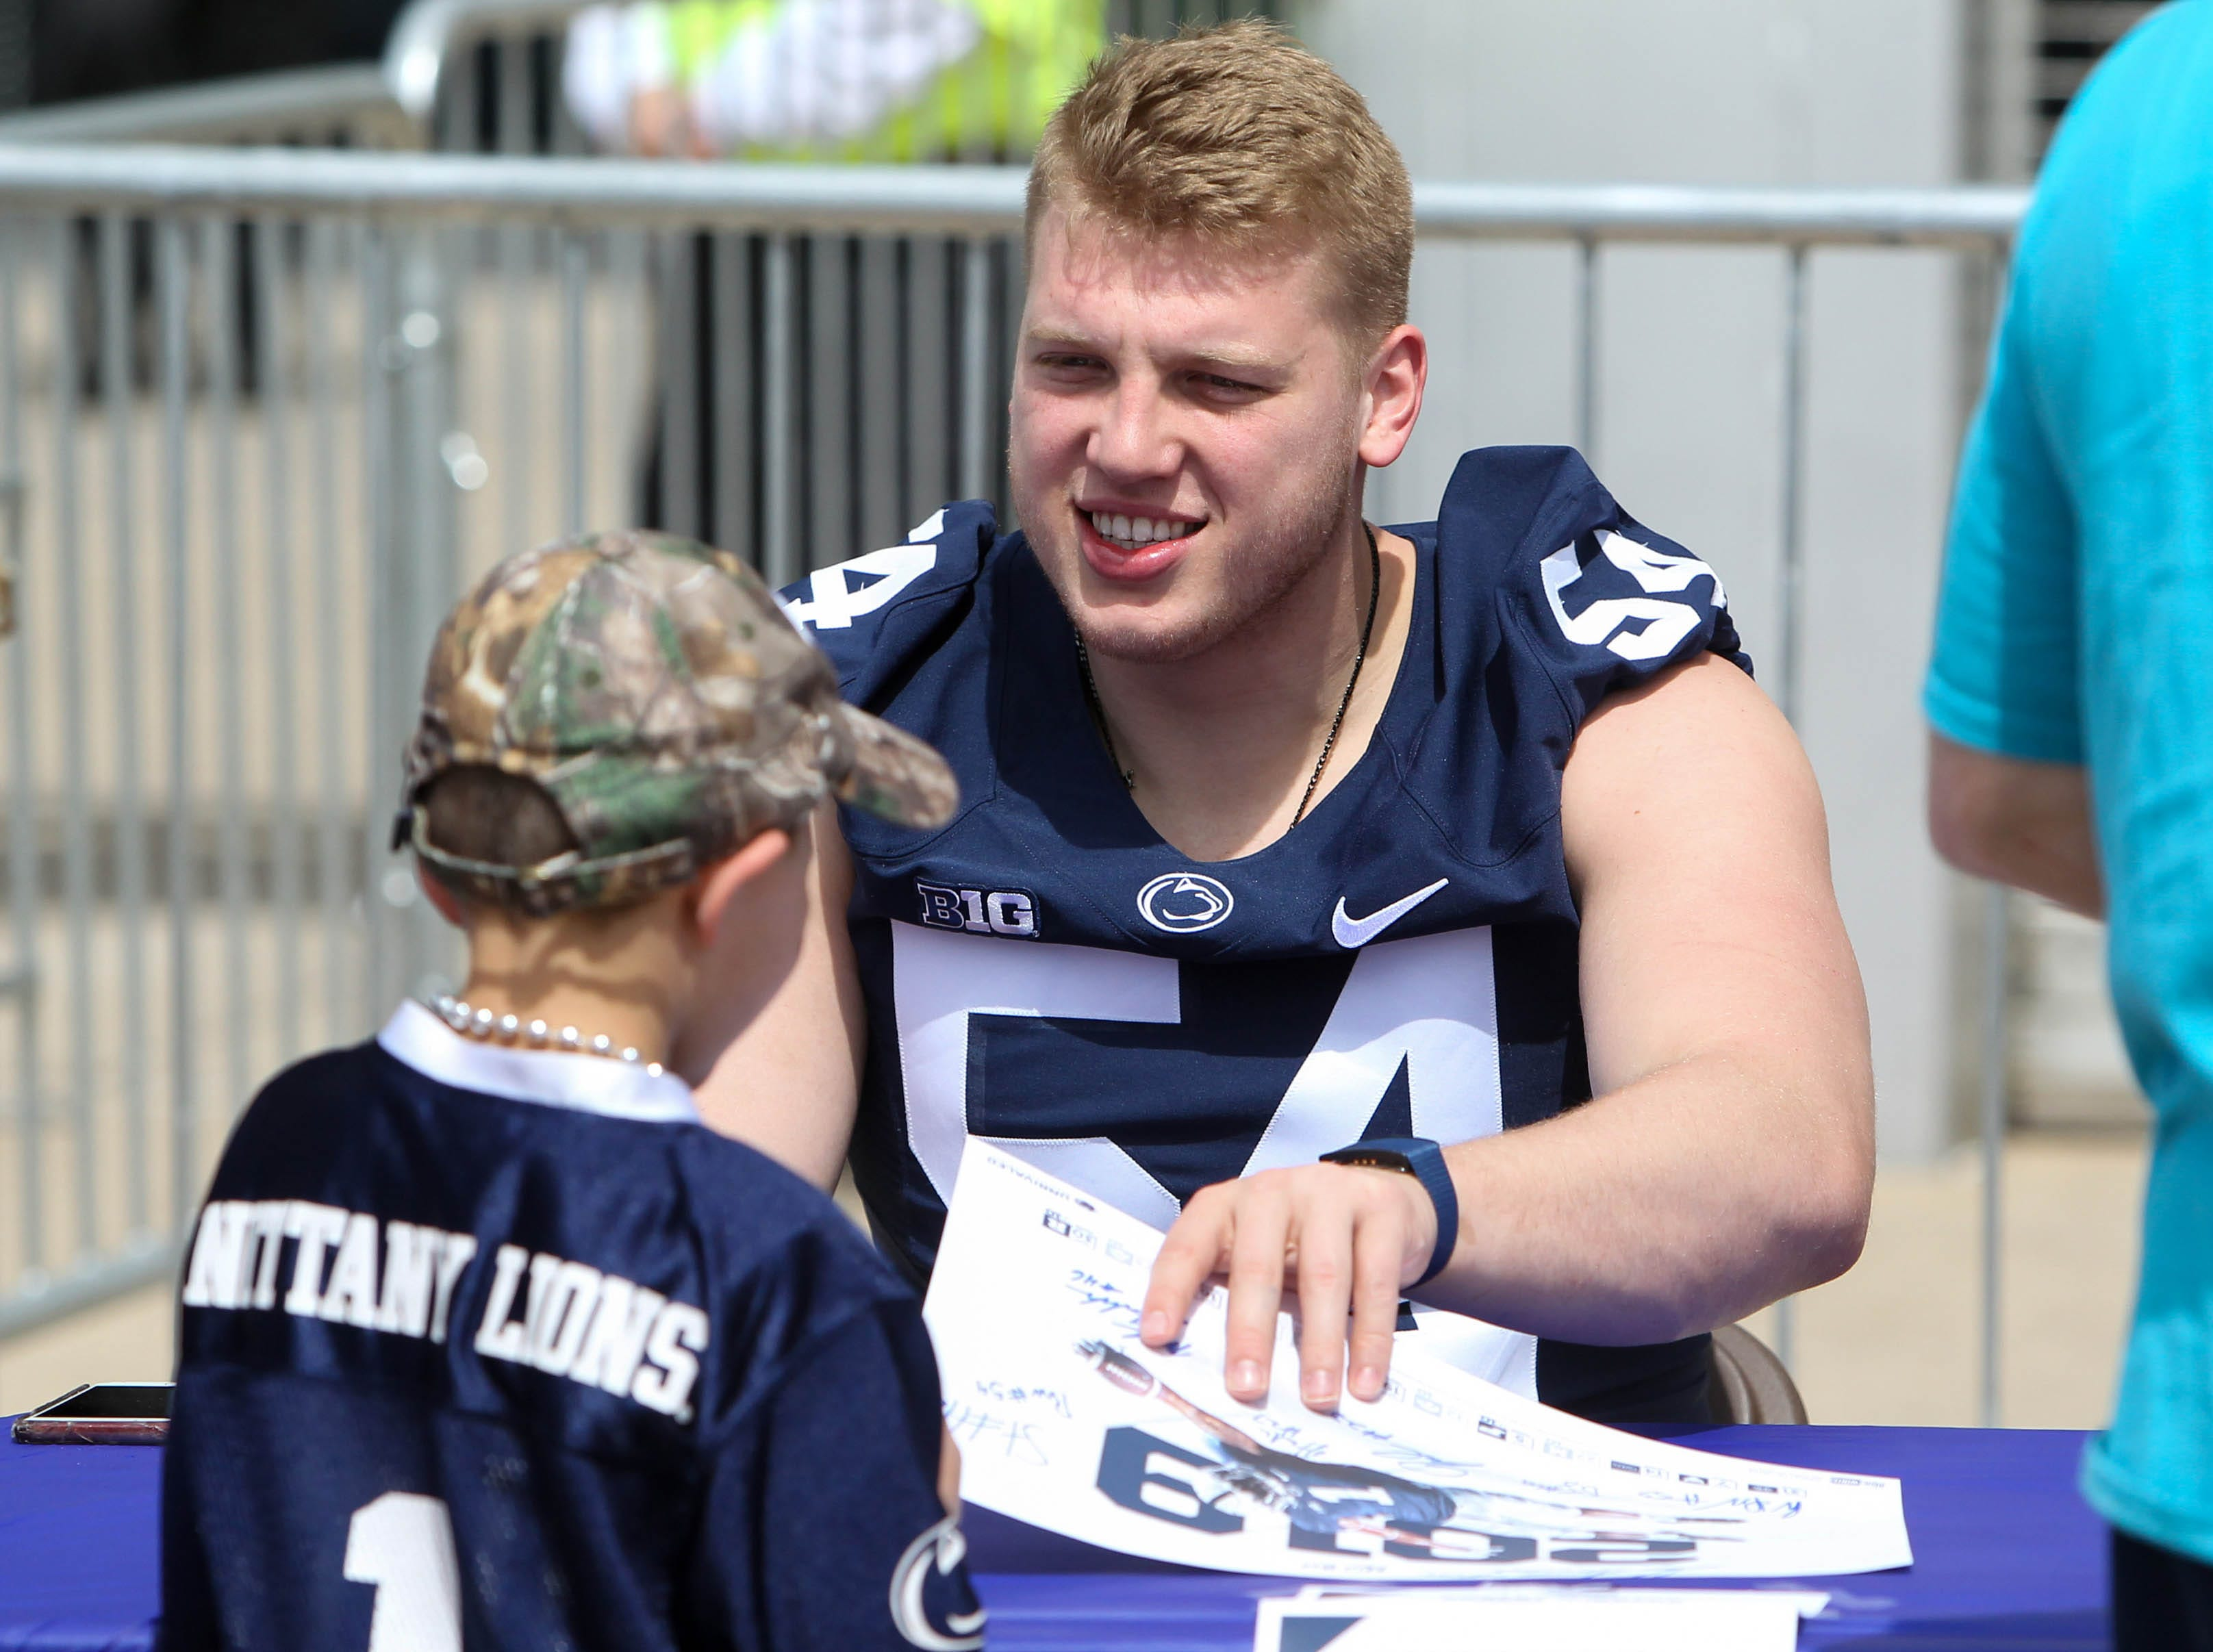 Apr 13, 2019; University Park, PA, USA; Penn State Nittany Lions defensive tackle Robert Windsor (54) signs an autograph for a fan prior to the Blue White spring game at Beaver Stadium. Mandatory Credit: Matthew O'Haren-USA TODAY Sports